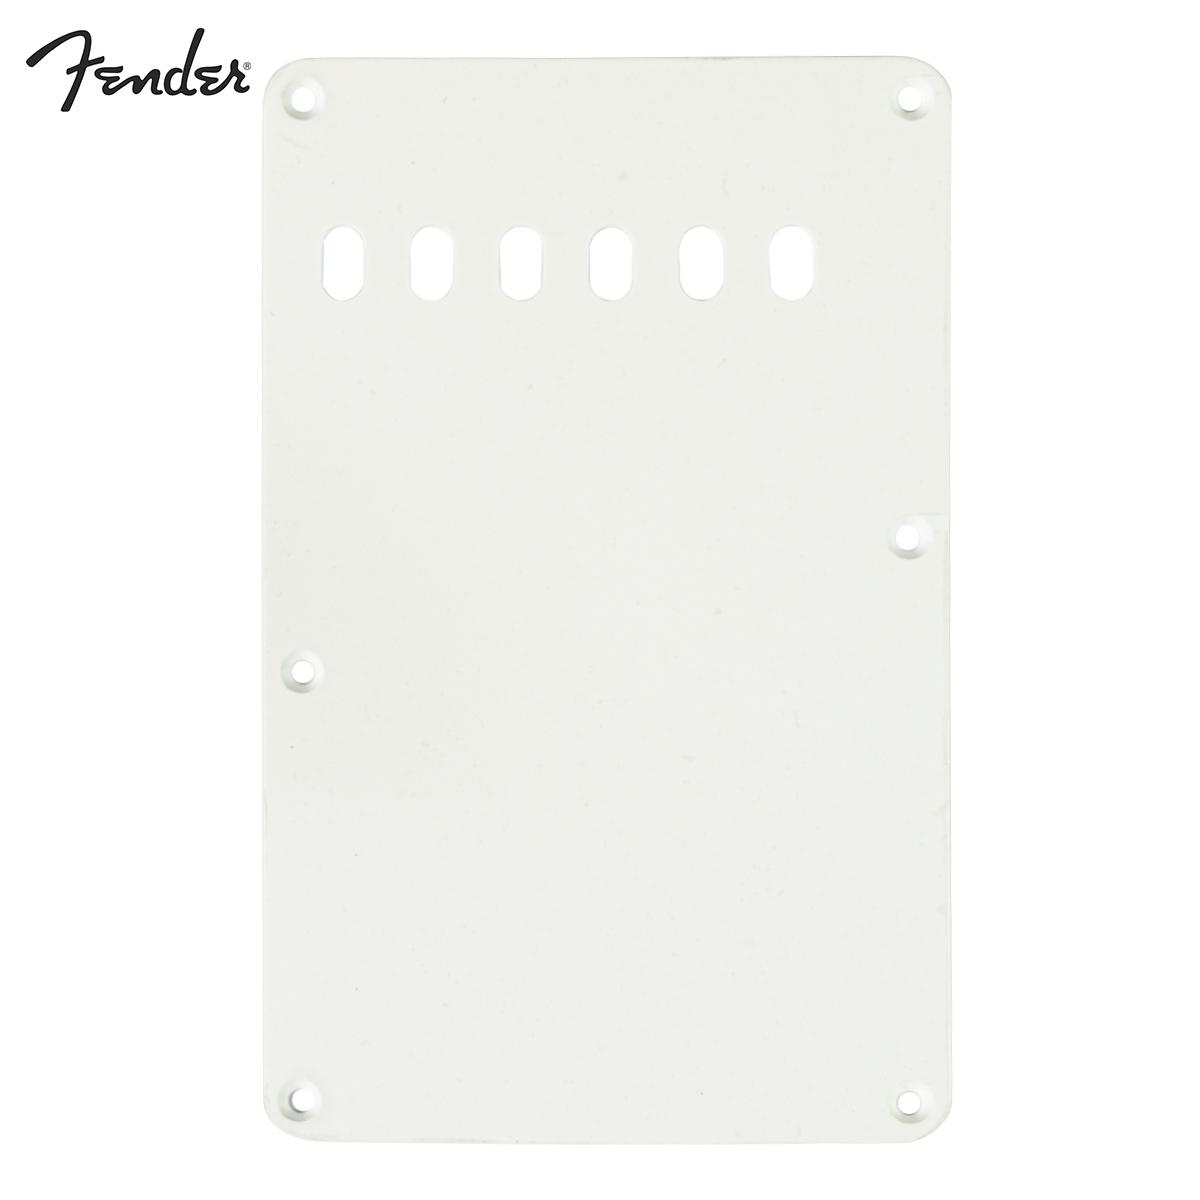 Fender Strat Backplate 1 Ply White